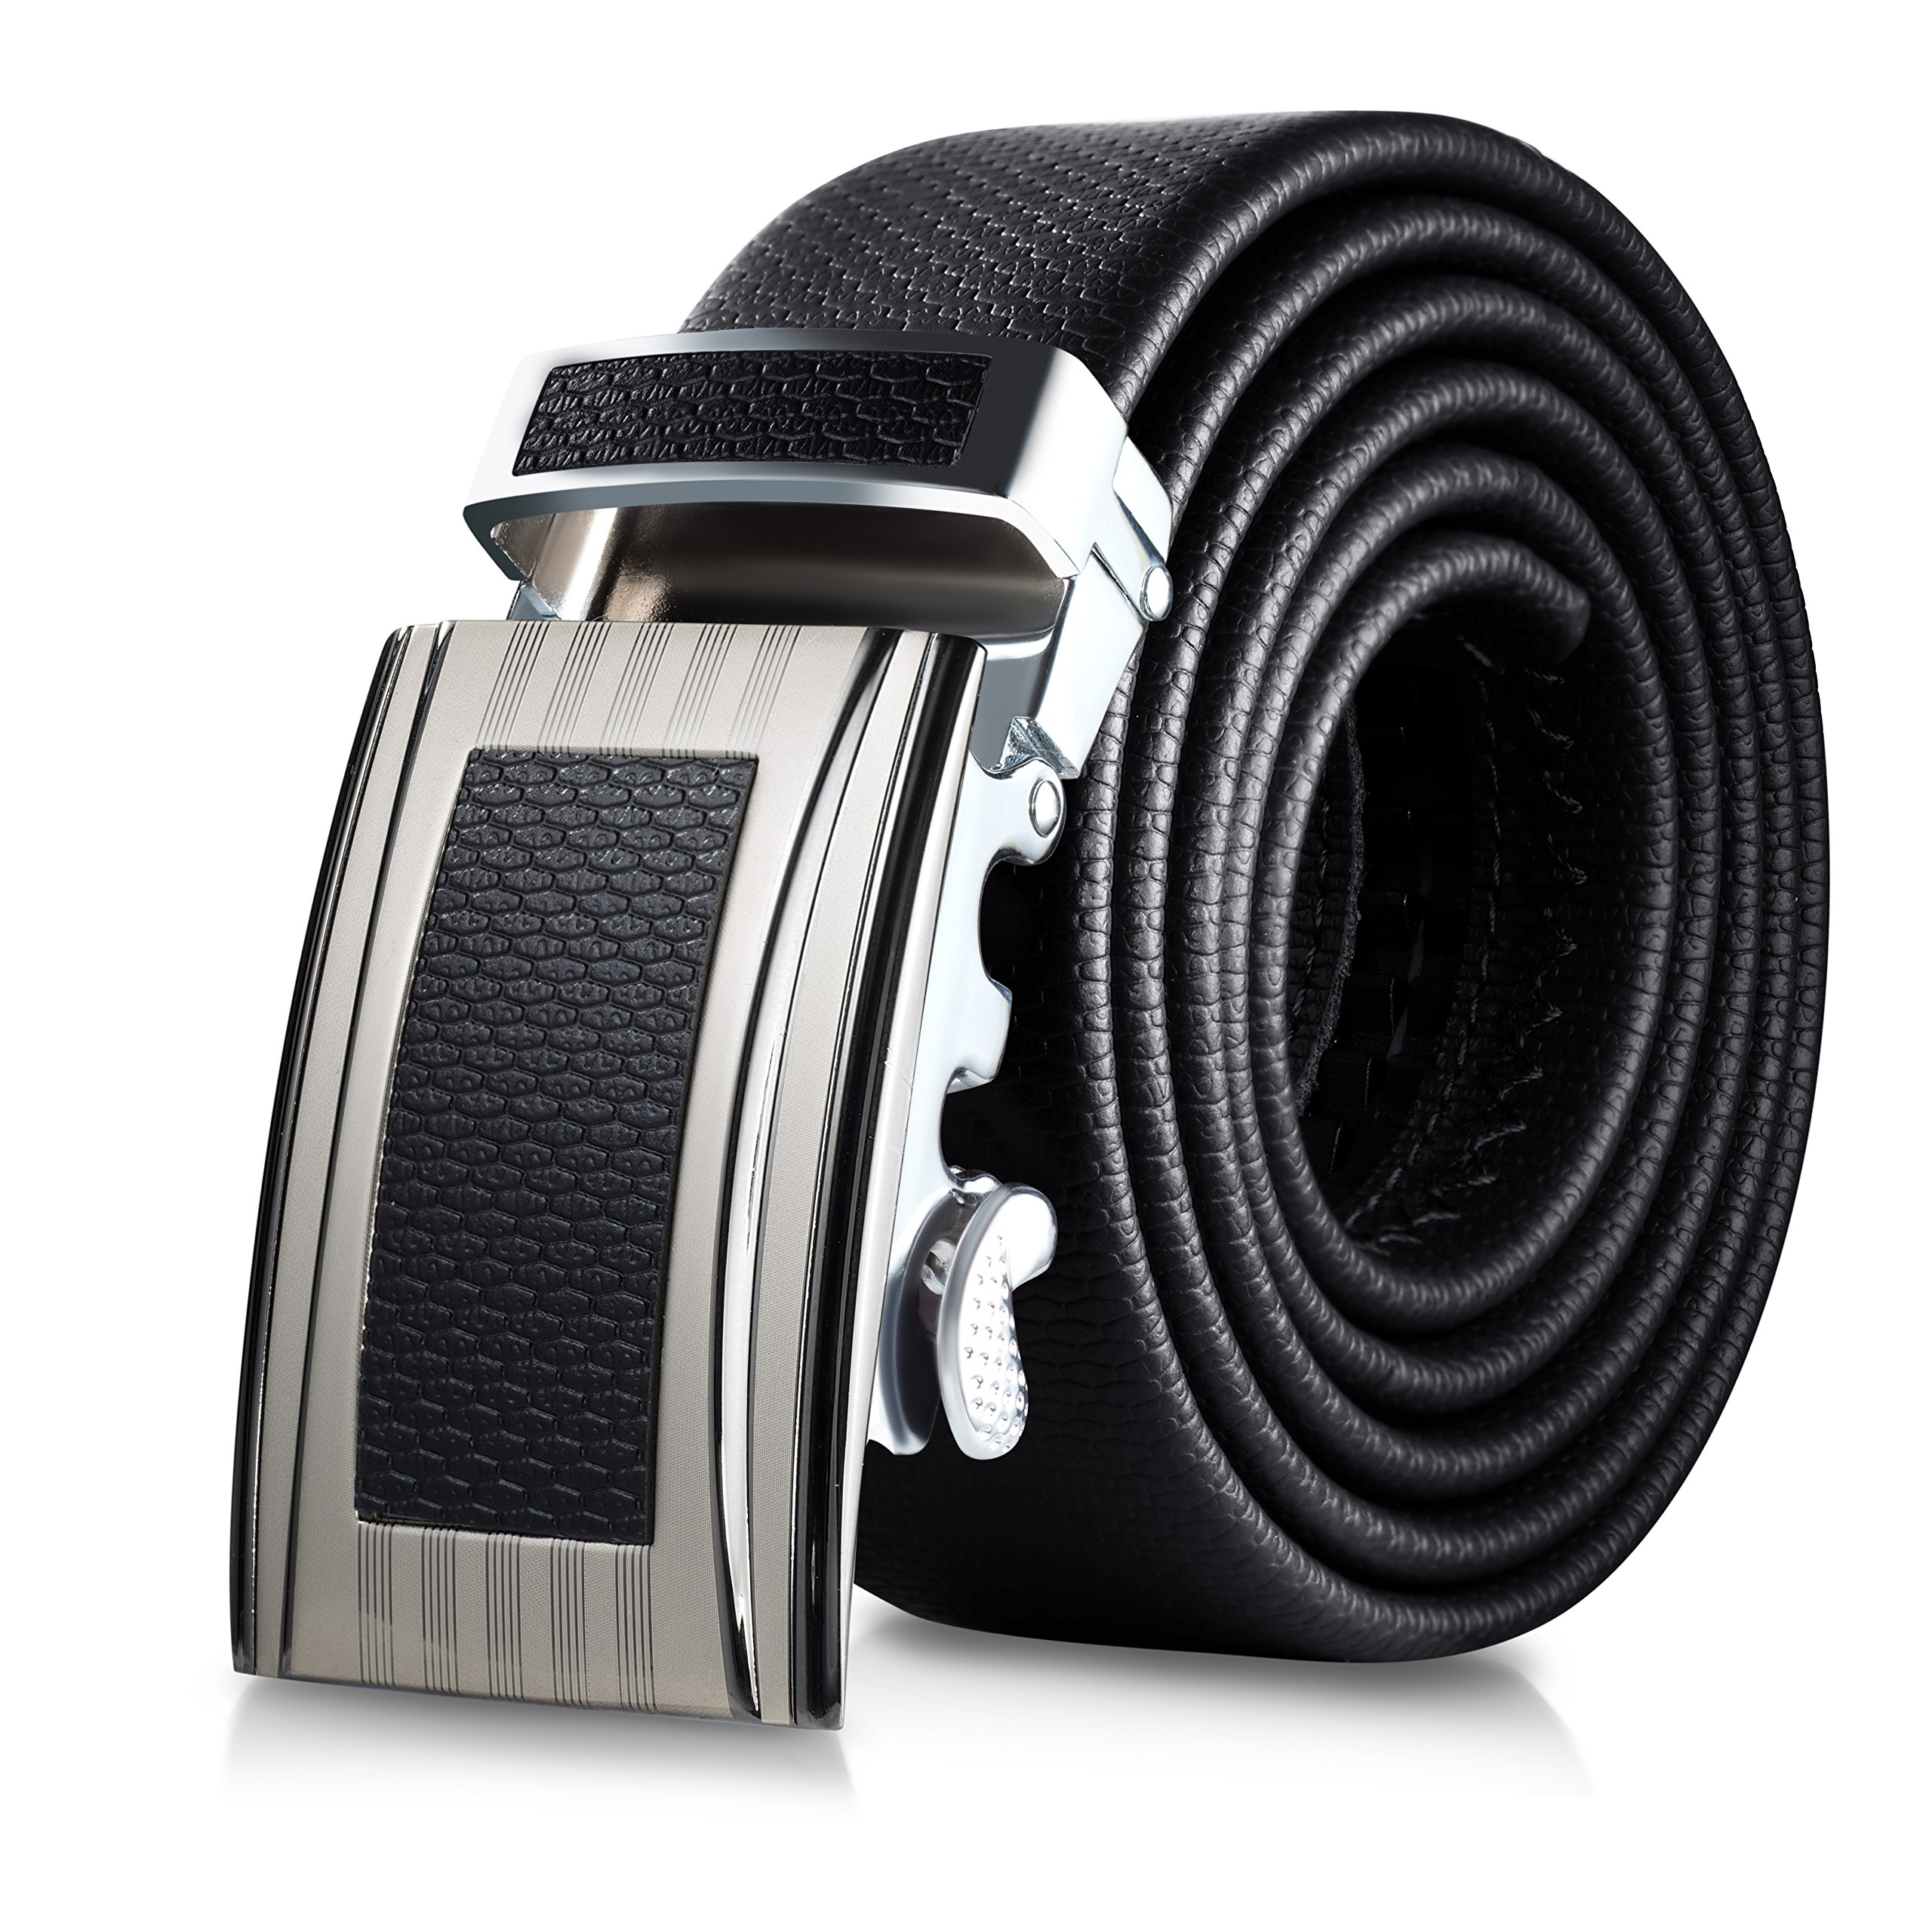 Mio Marino Classic Ratchet Belt - Premium Leather - 1.38 Wide - Adjustable Buckle - Free Gift Box - Indented Border Ratchet Belt - Black - Adjustable from 38'' to 54'' Waist